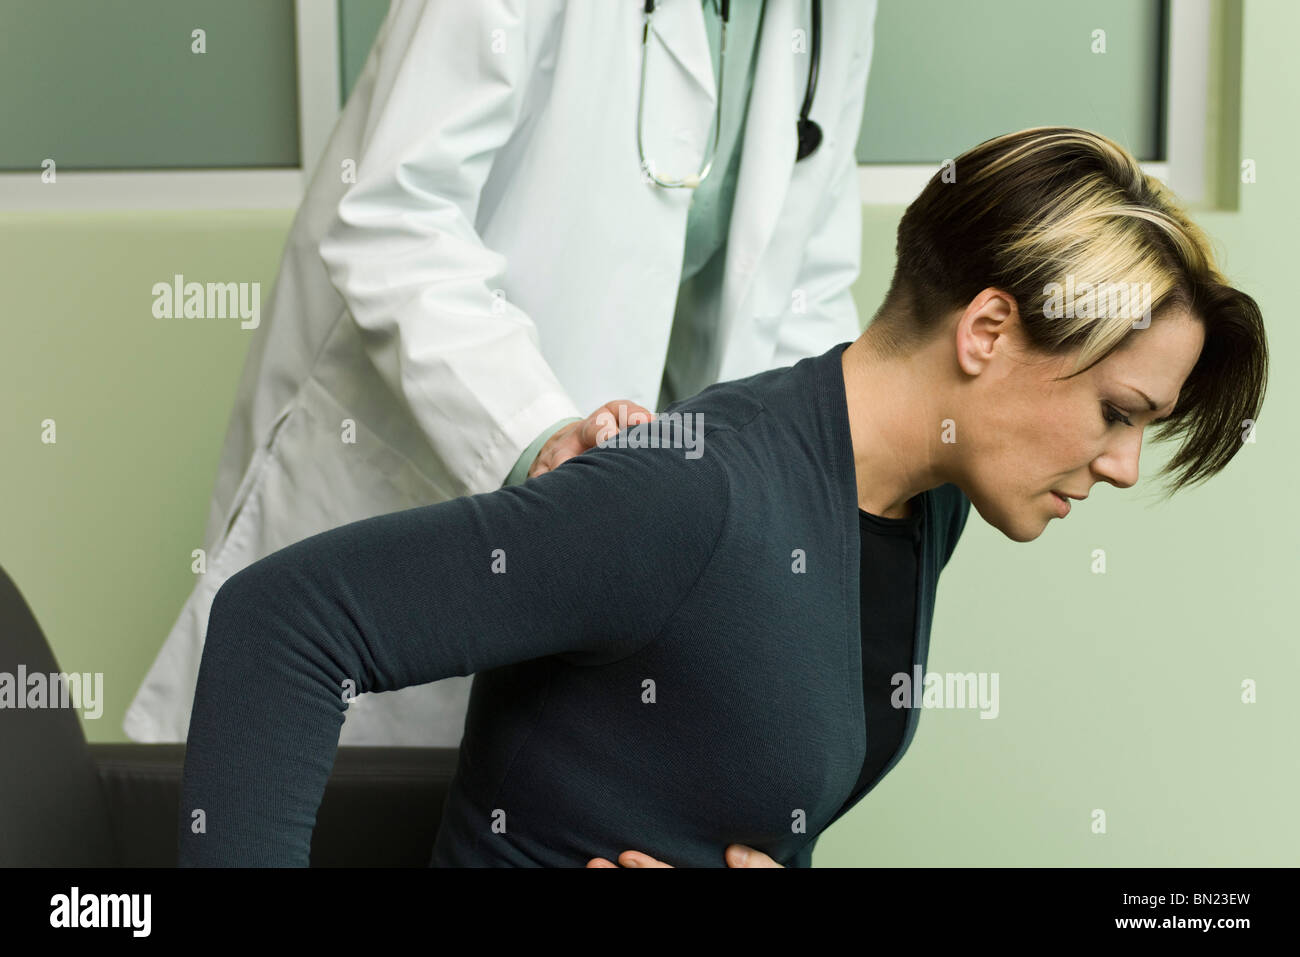 Doctor assisting patient experiencing severe abdominal pain - Stock Image